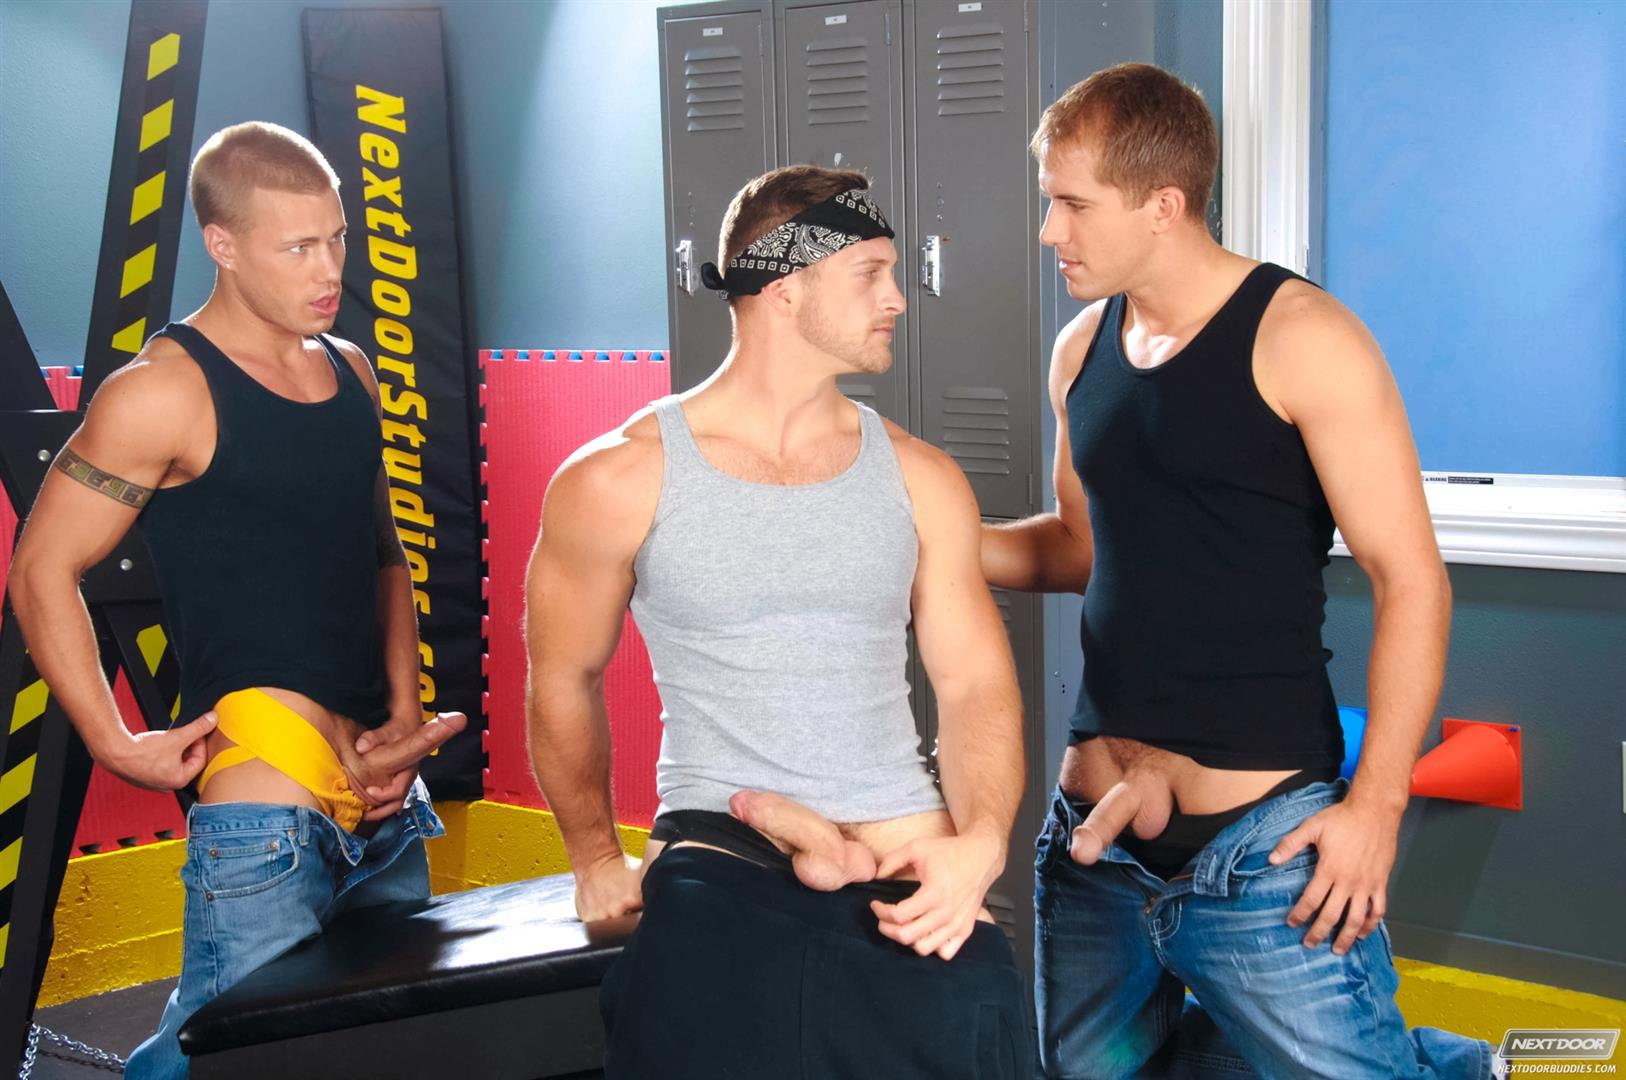 Next-Door-Buddies-Brandon-Lewis-Paul-Wagner-Brody-Wilder-Hung-Jocks-Fucking-In-The-Locker-Room-Amateur-Gay-Porn-02 Muscle Jocks Tag Teaming A Hot Muscle Ass In The Gym Locker Room